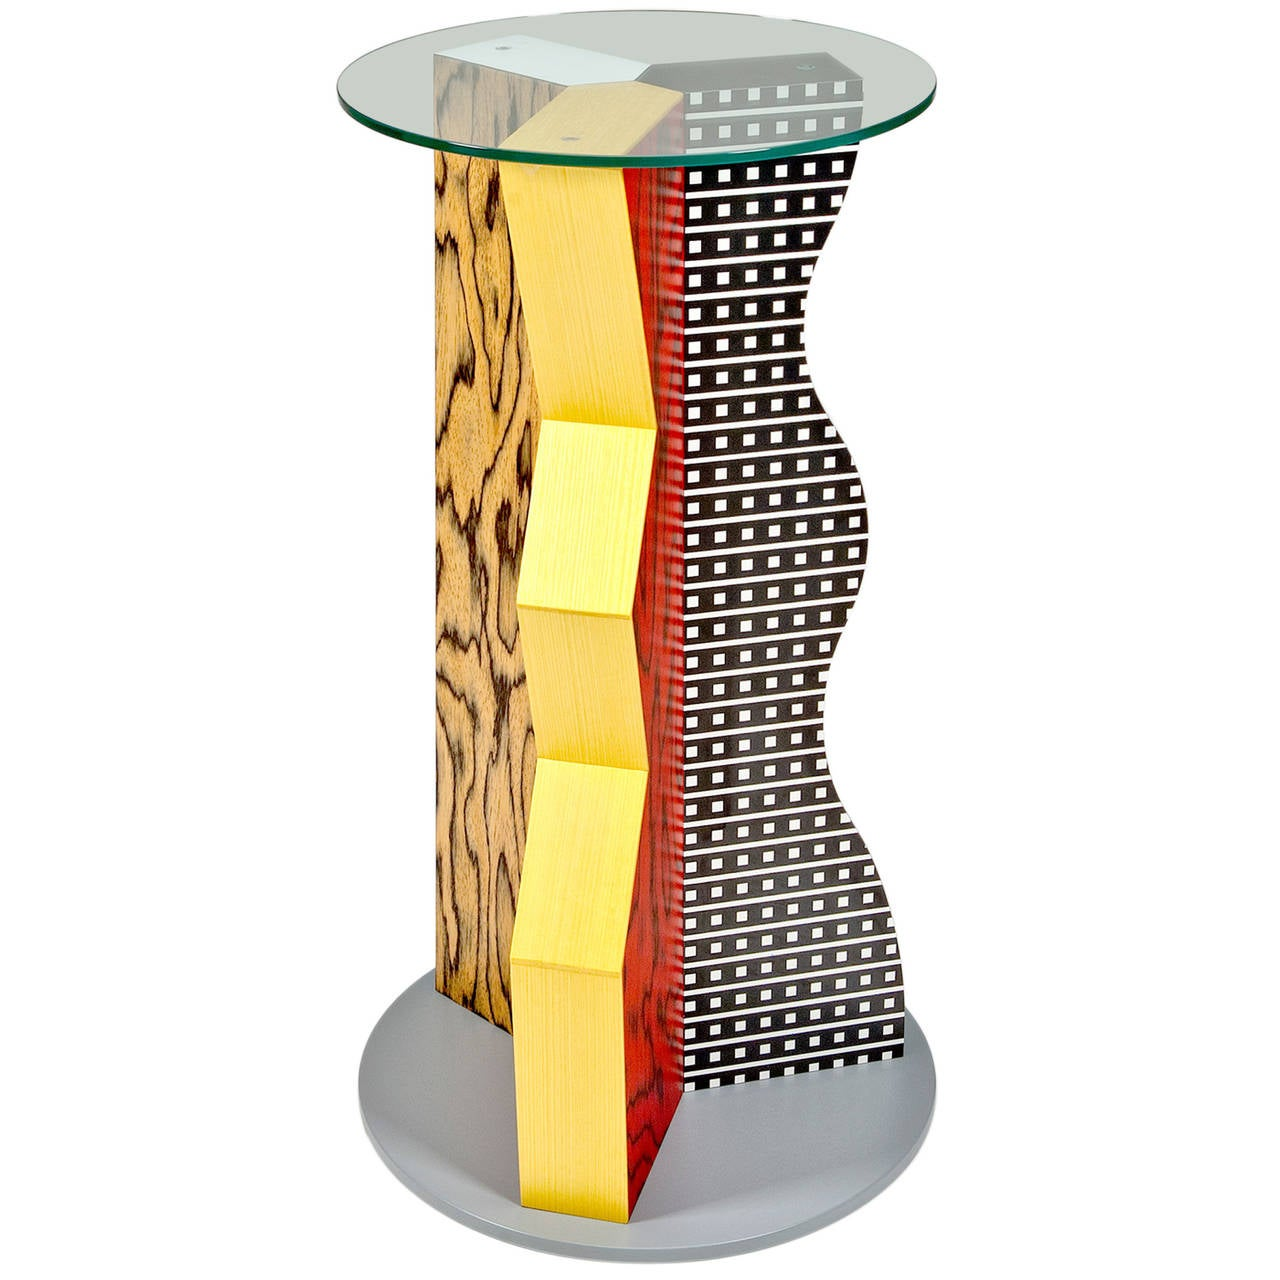 Ivory Pedestal by Ettore Sottsass for Memphis Milano at  : 3044032l from www.1stdibs.com size 1280 x 1280 jpeg 134kB